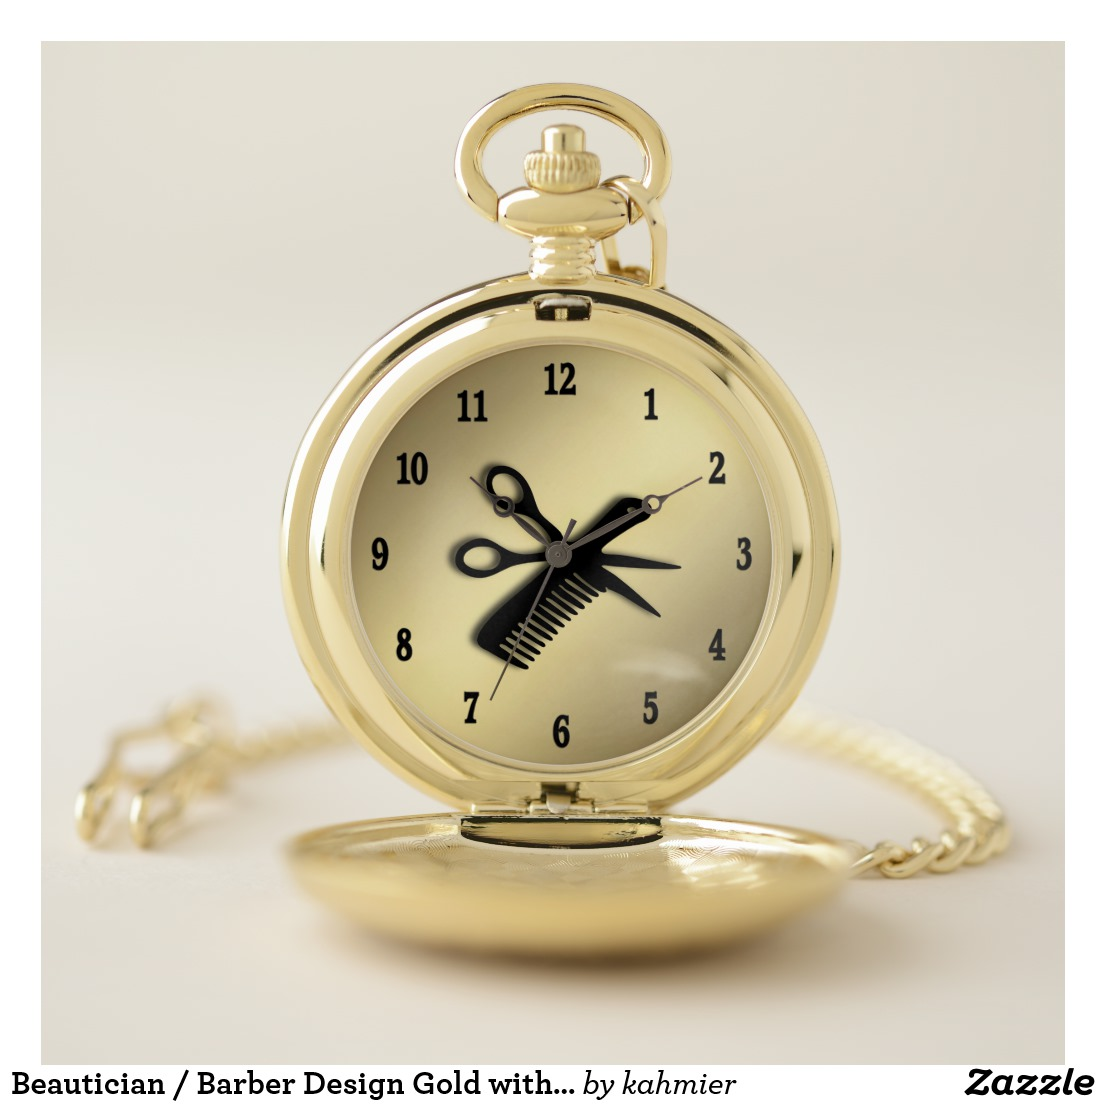 Beautician / Barber Design Gold with Black Numbers Pocket Watch